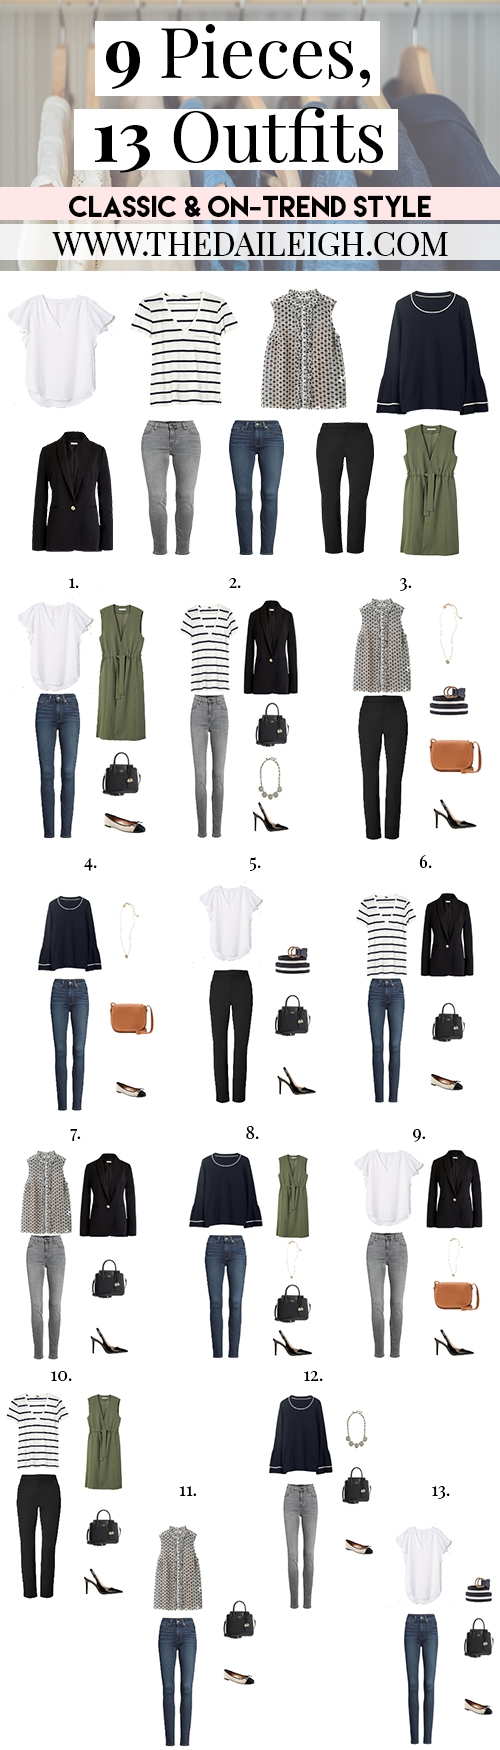 9 Piece, 13 Outfits Classic On-Trend Style